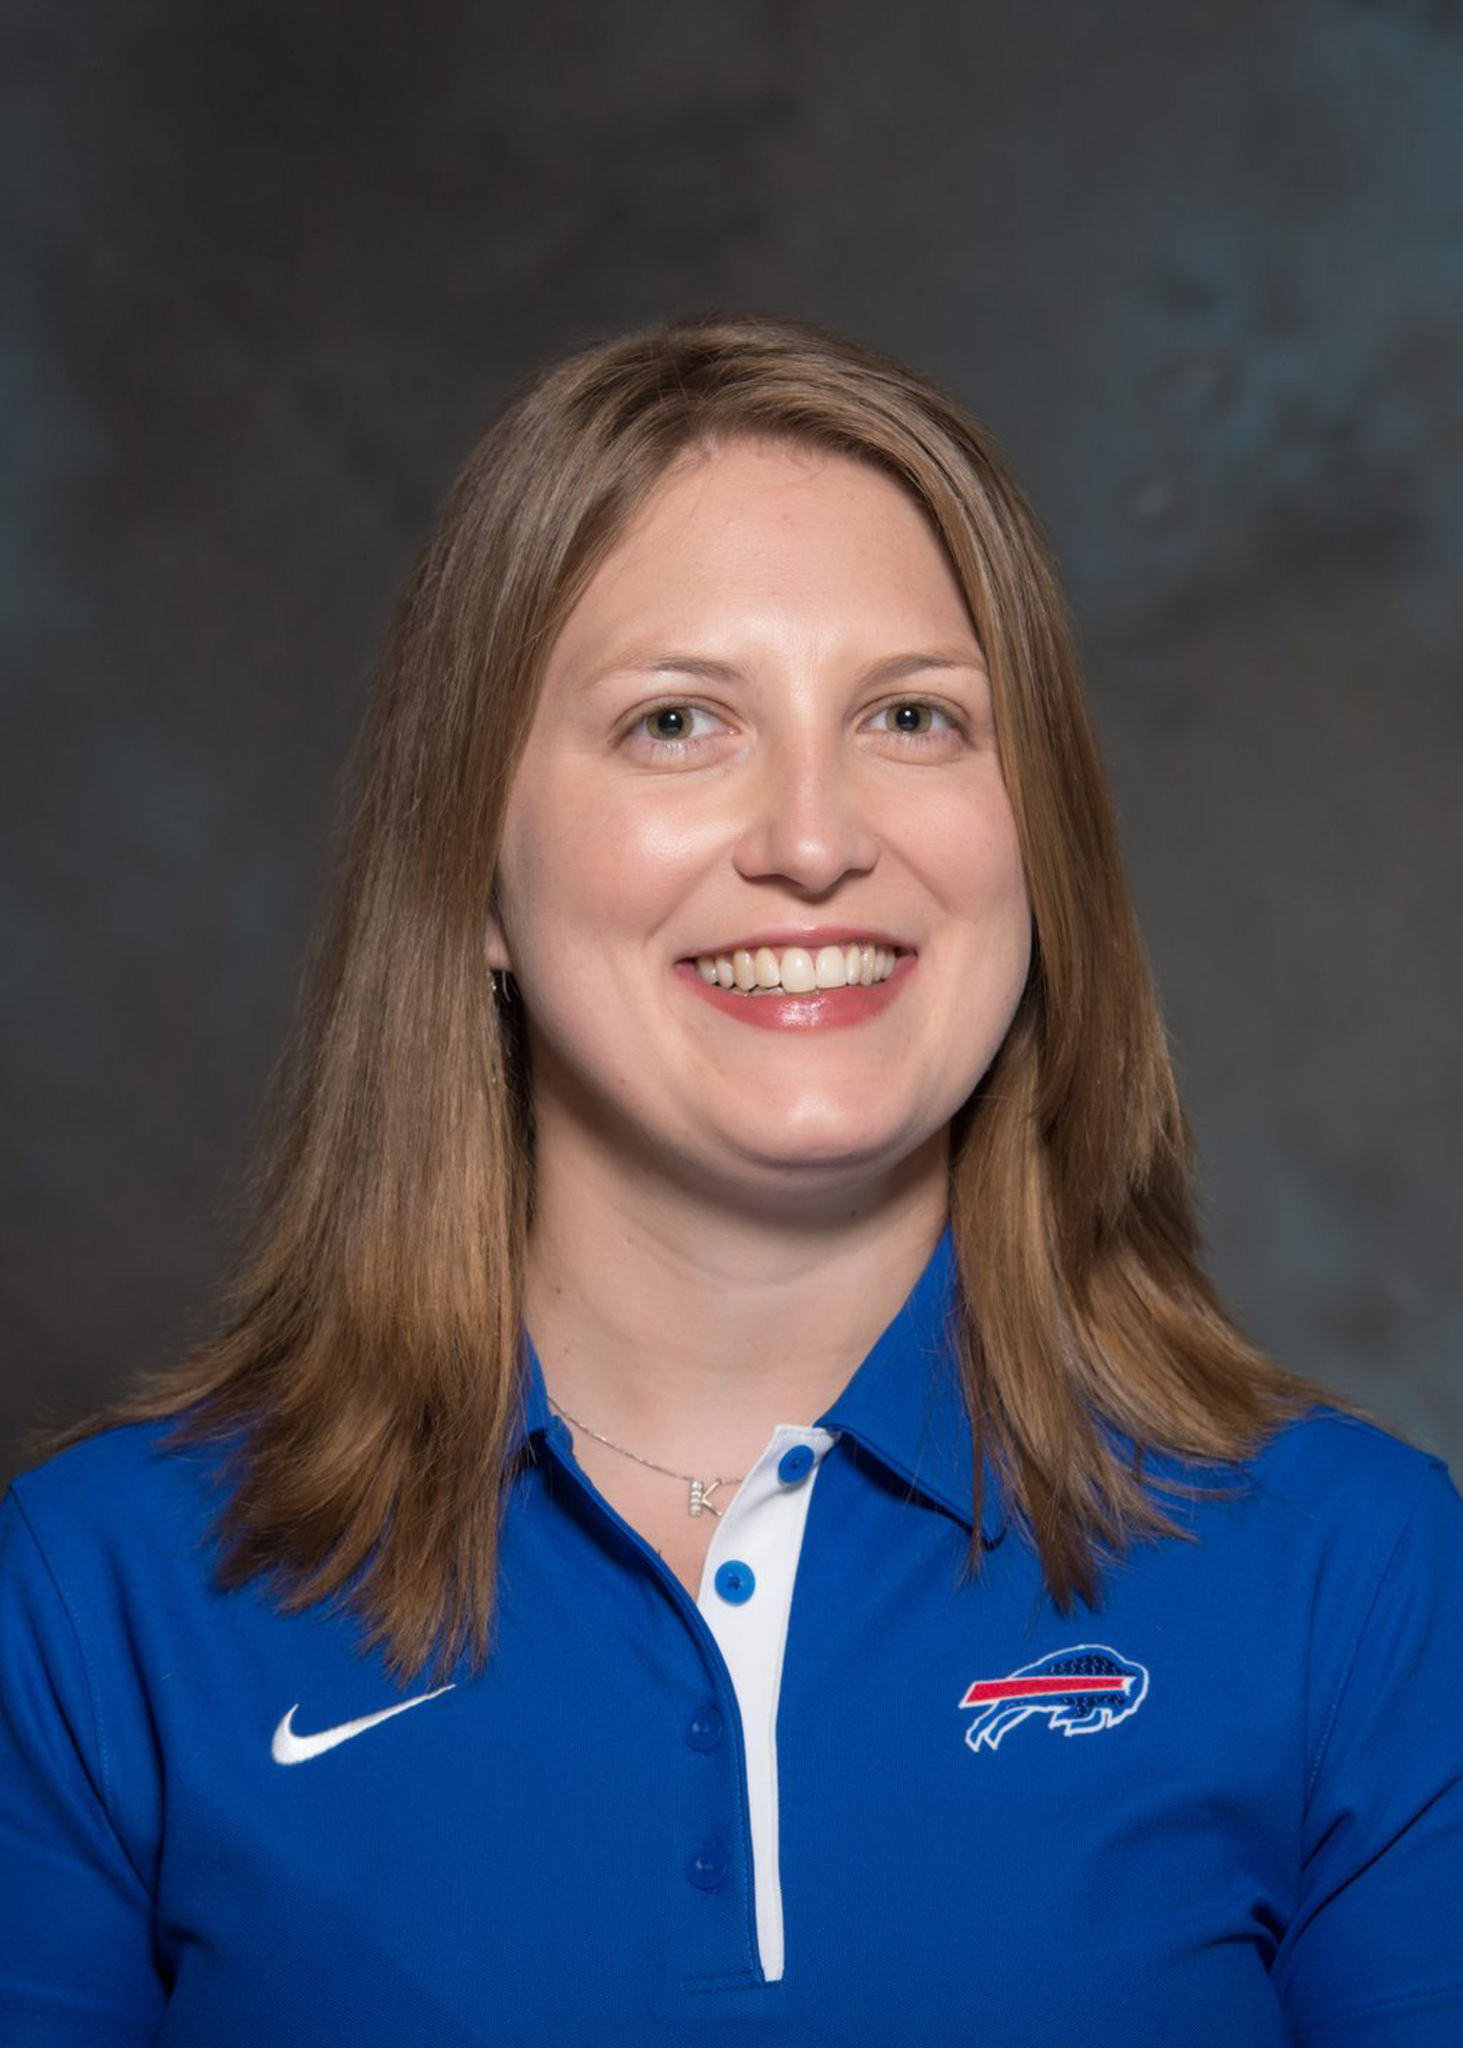 This photo provided by the Buffalo Bills shows Kathryn Smith, who has been announced as the team's new special teams quality control coach on Jan. 20 2016.